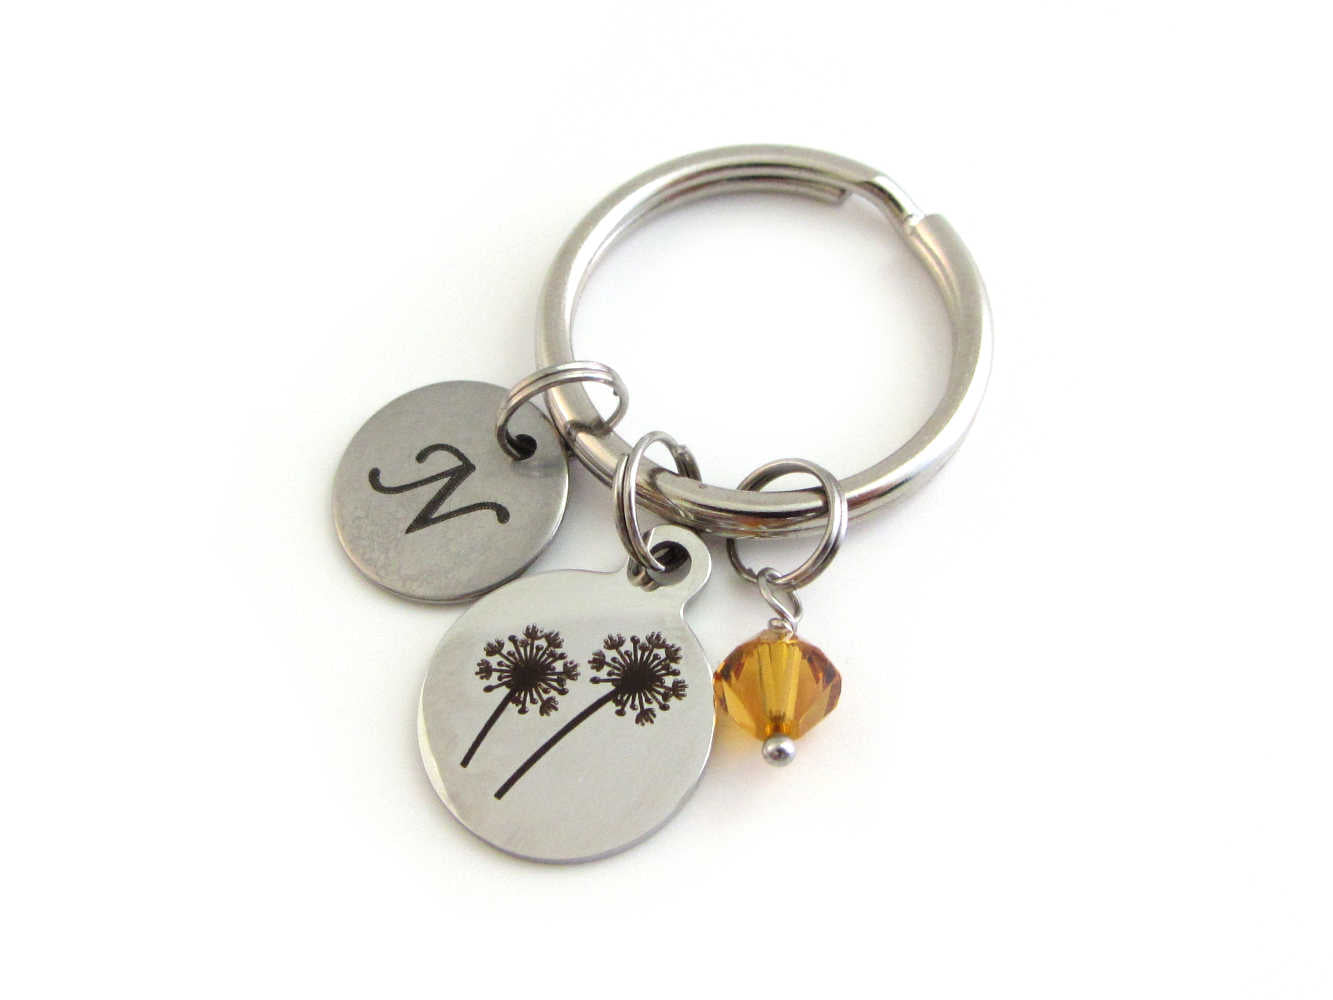 laser engraved capital initial letter disc charm, a laser engraved dandelion flowers charm and an orange crystal charm on a keyring